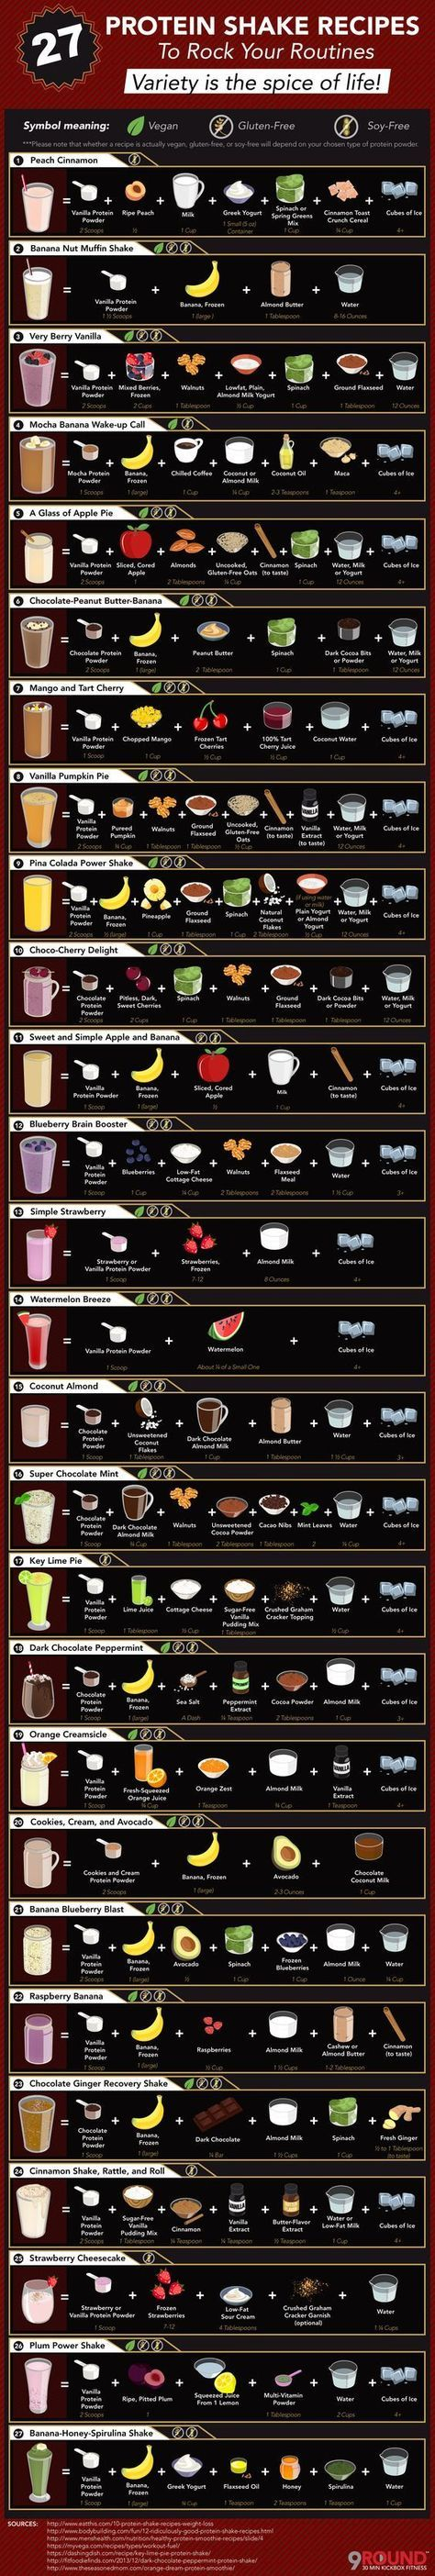 These Protein Shakes And Weight Loss Recipes are a great place to start if you are wanting to lose weight and belly fat and gain muscle.